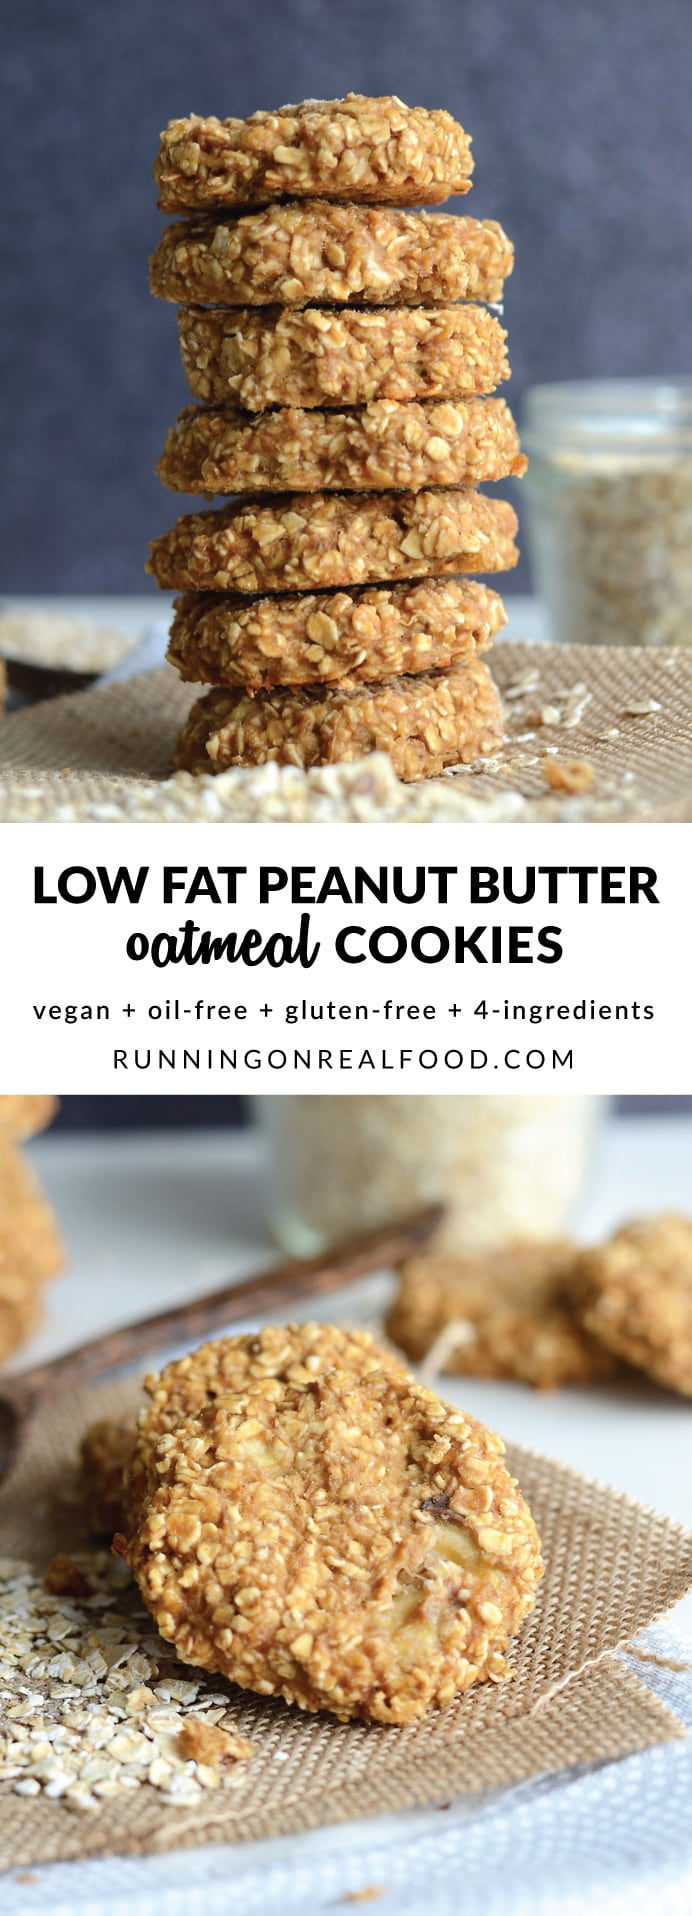 These 4-ingredient, vegan, low fat peanut butter oatmeal cookies are gluten-free, have no added sugar and are easy to make for a healthy, delicious treat. Try them with your favourite add-ins such as walnuts, chocolate chips, cranberries, chopped dark chocolate or raisins!